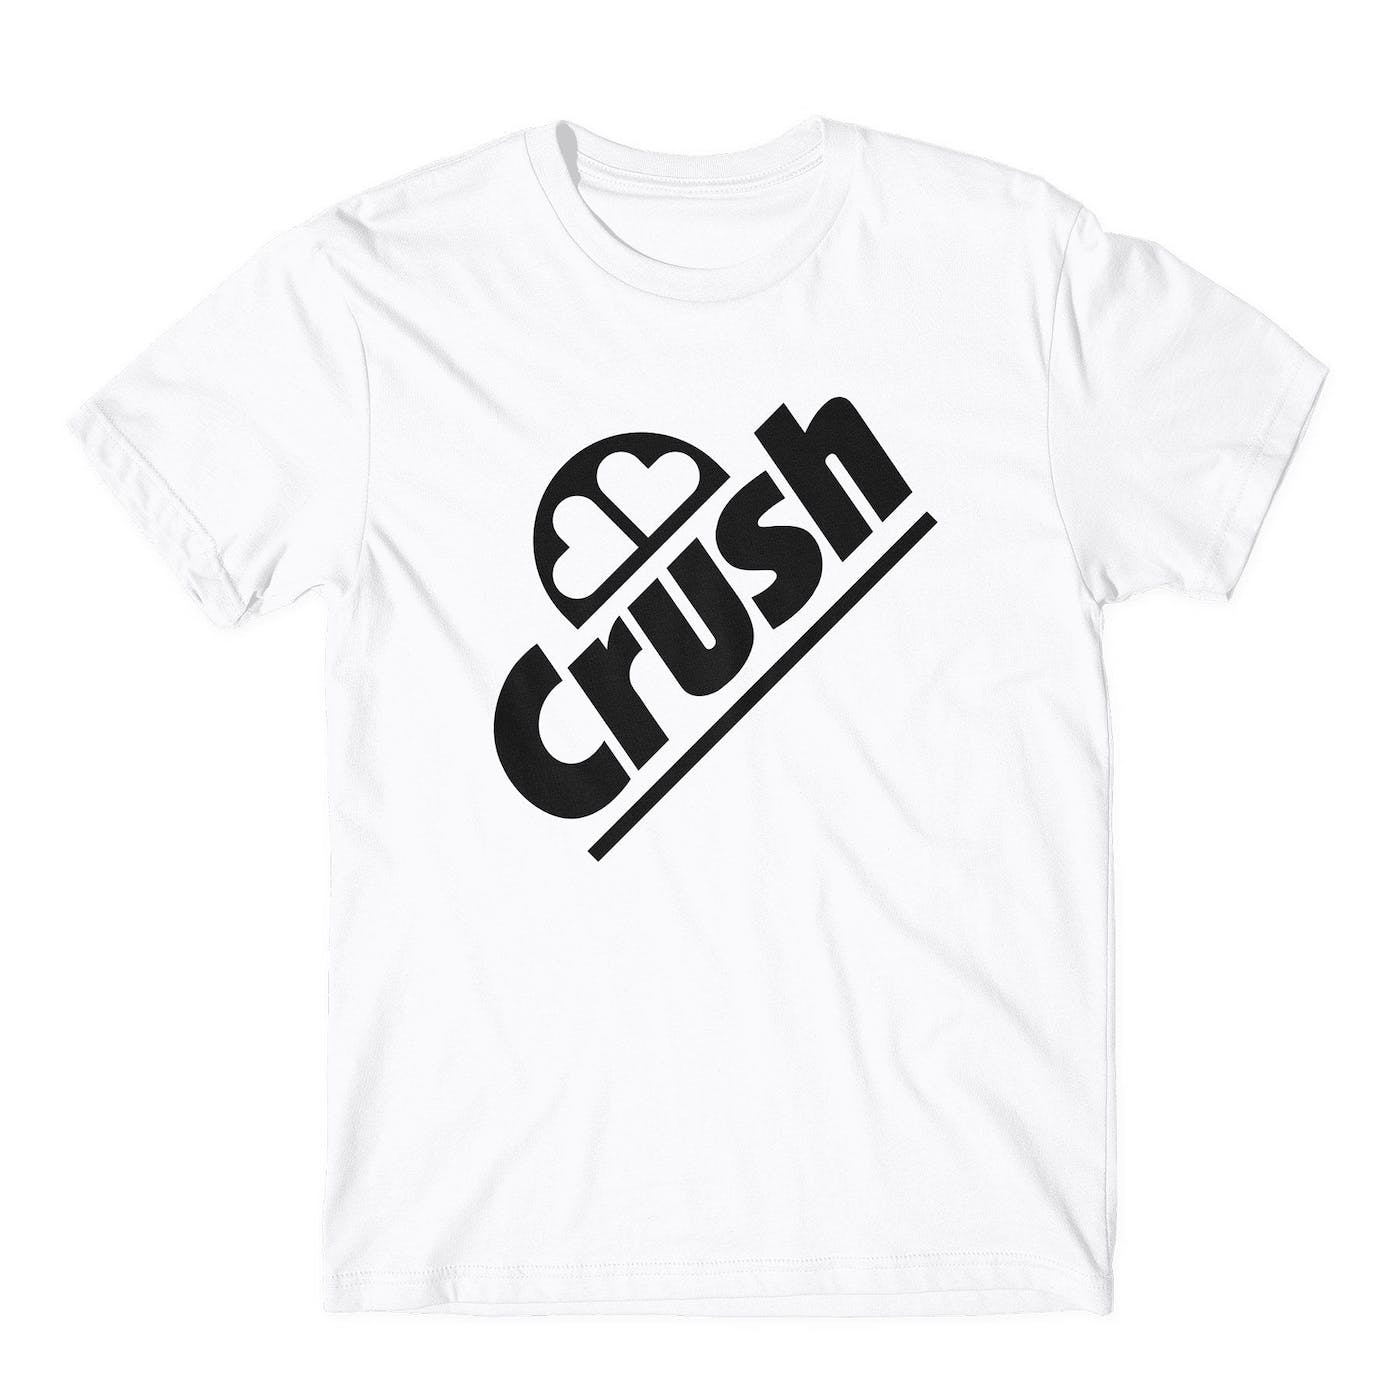 90s Large Crush in Black on White